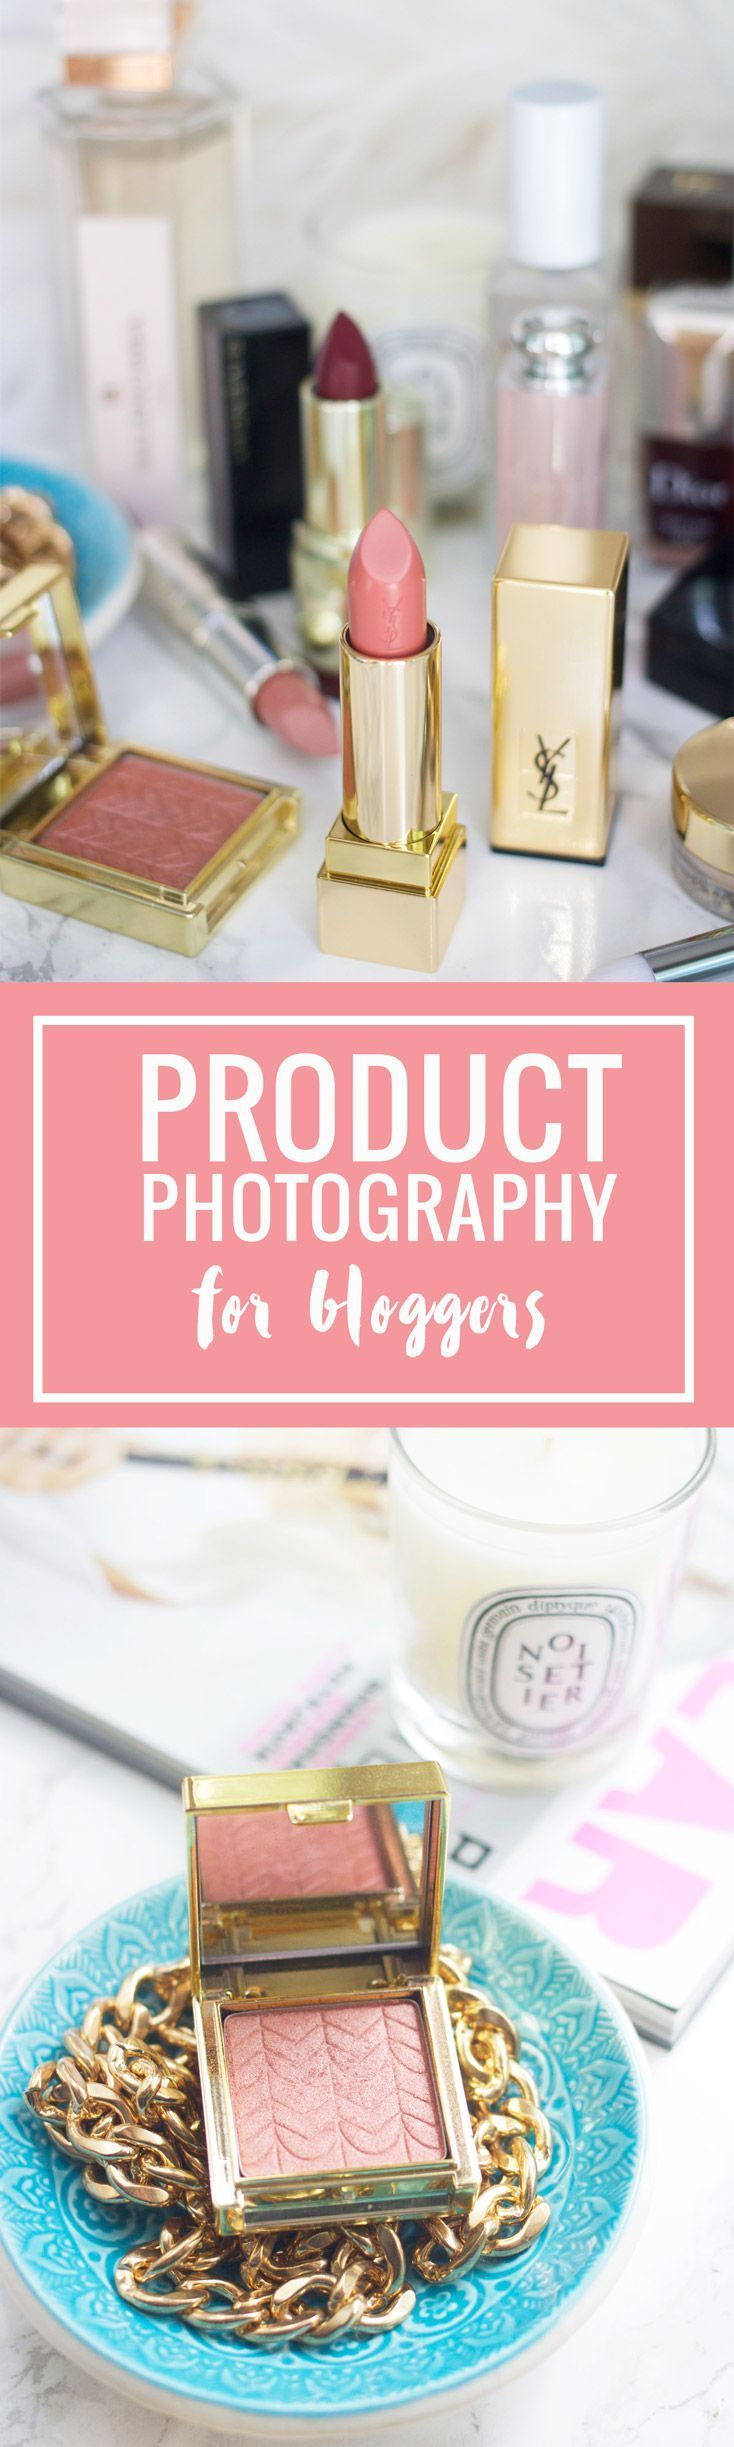 Product photography tips for bloggers - great ideas and suggestions that any blogger should read